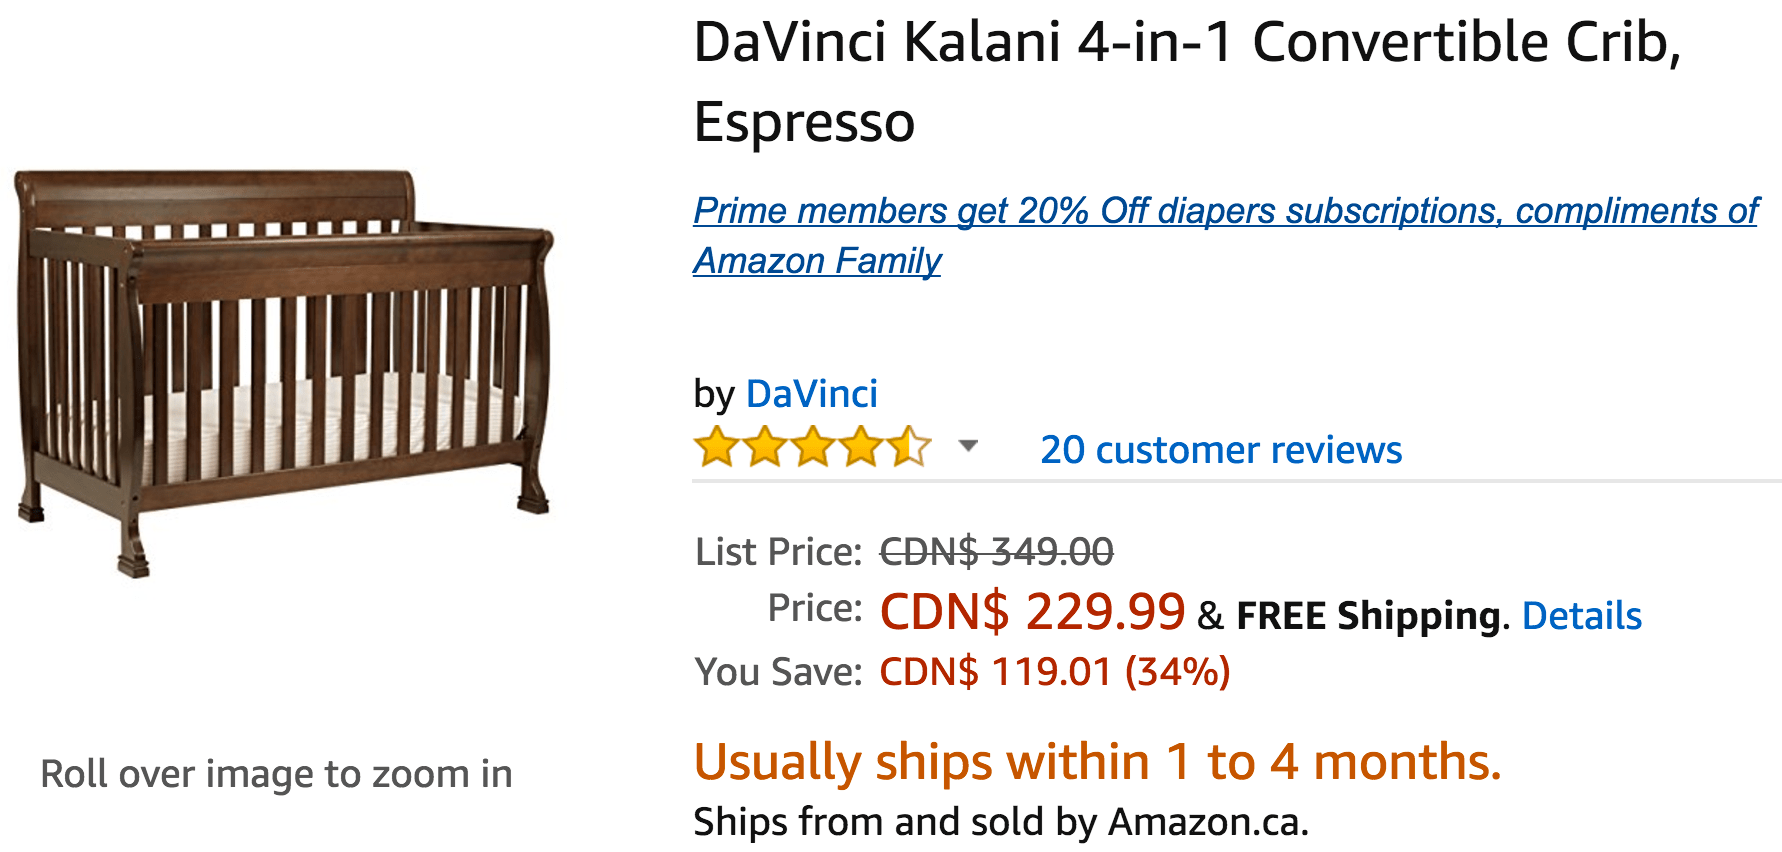 Amazon Canada Deals: Save 34% on DaVinci Kalani 4-in-1 Convertible Crib, 33% on Safavieh Amherst Collection Rug